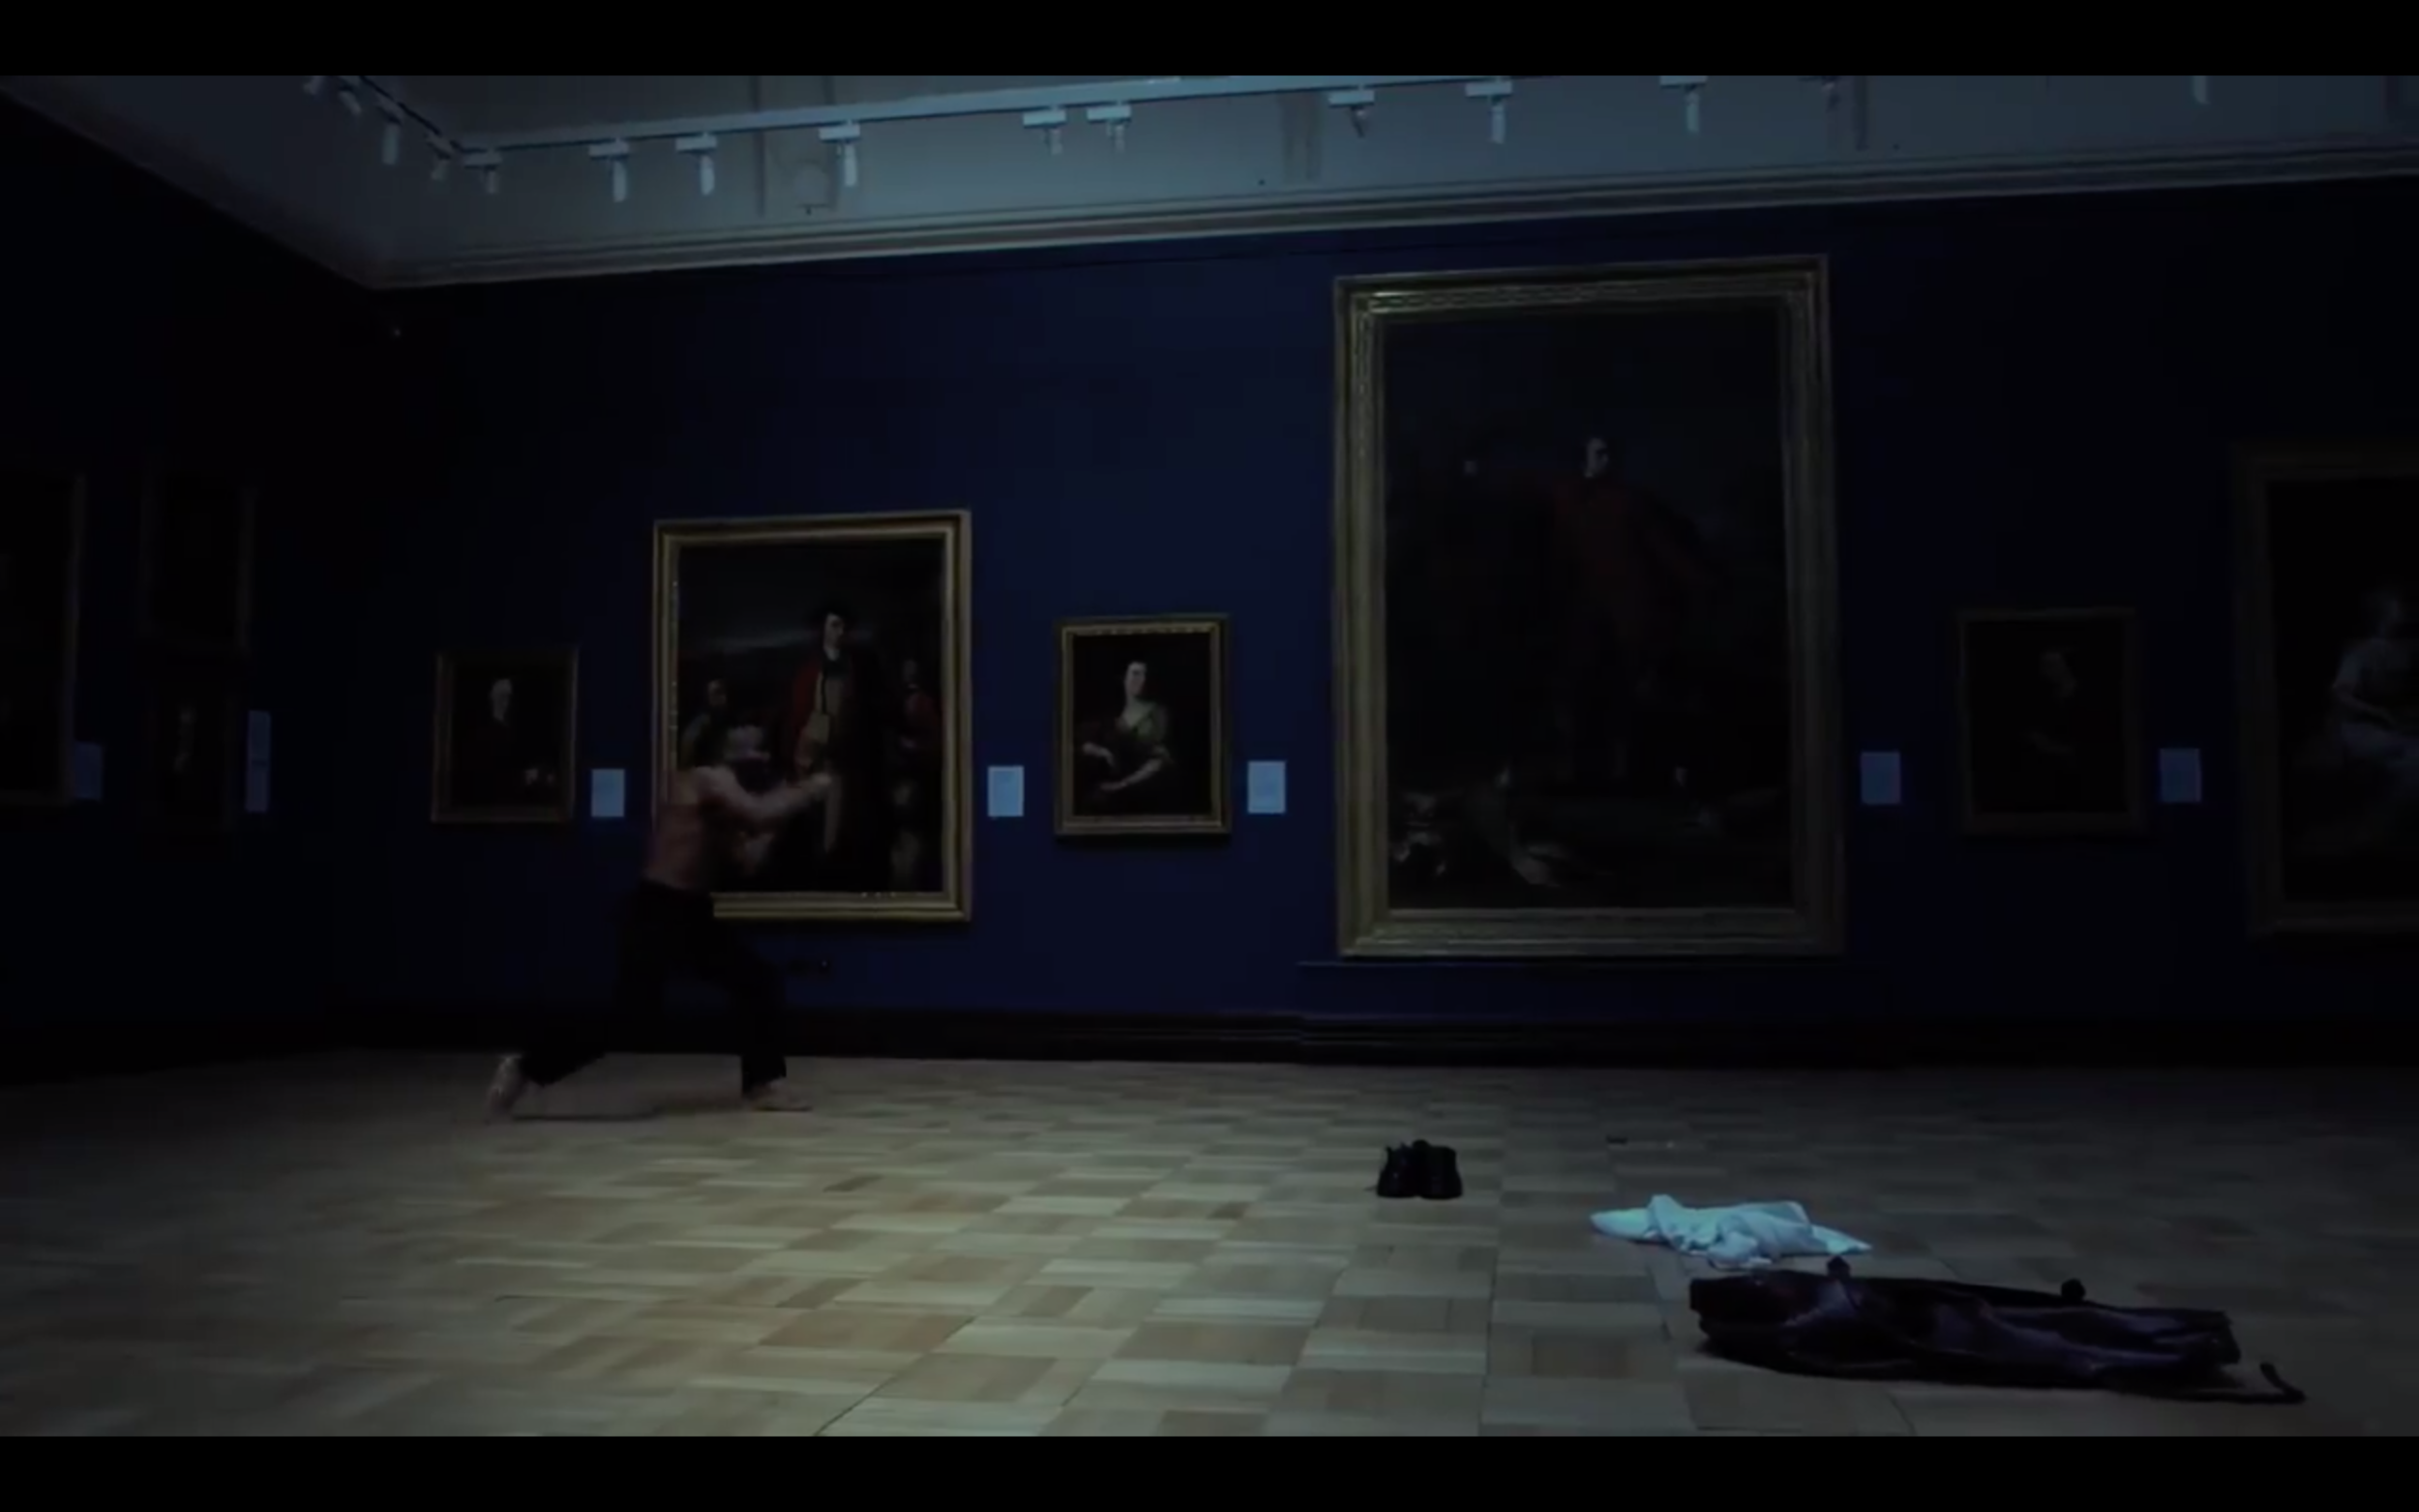 """He removes his shirt and begins to shadowbox with the paintings of Scottish national figures."""